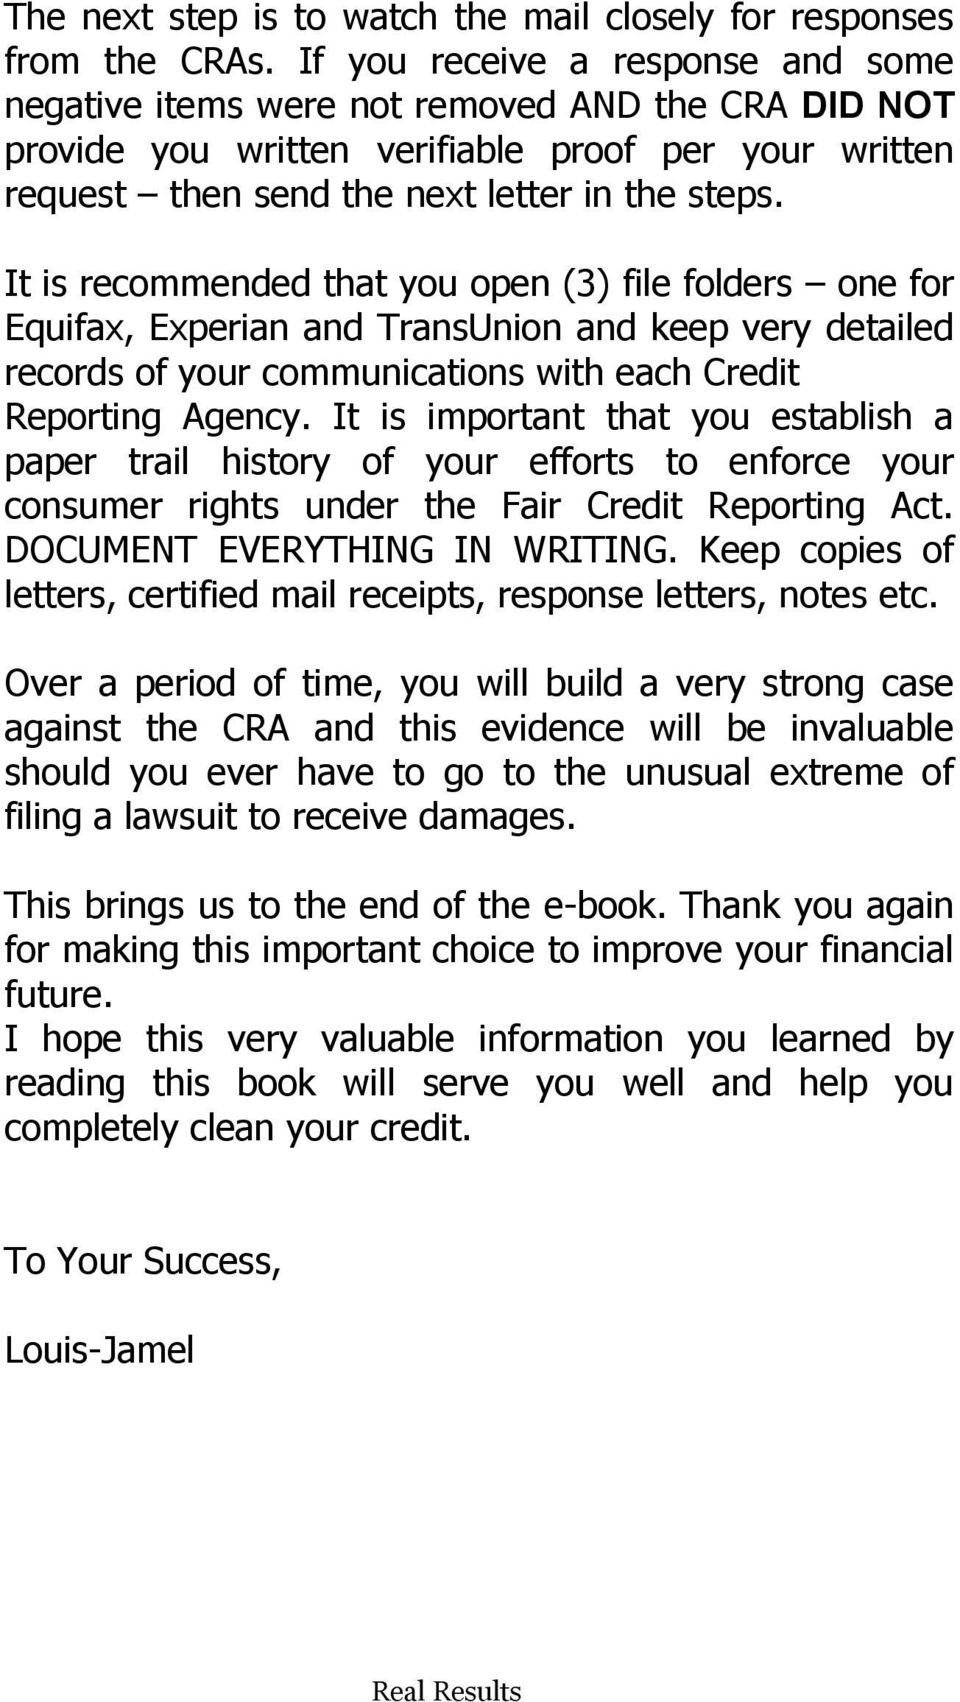 Credit Inquiry Removal Letter Template